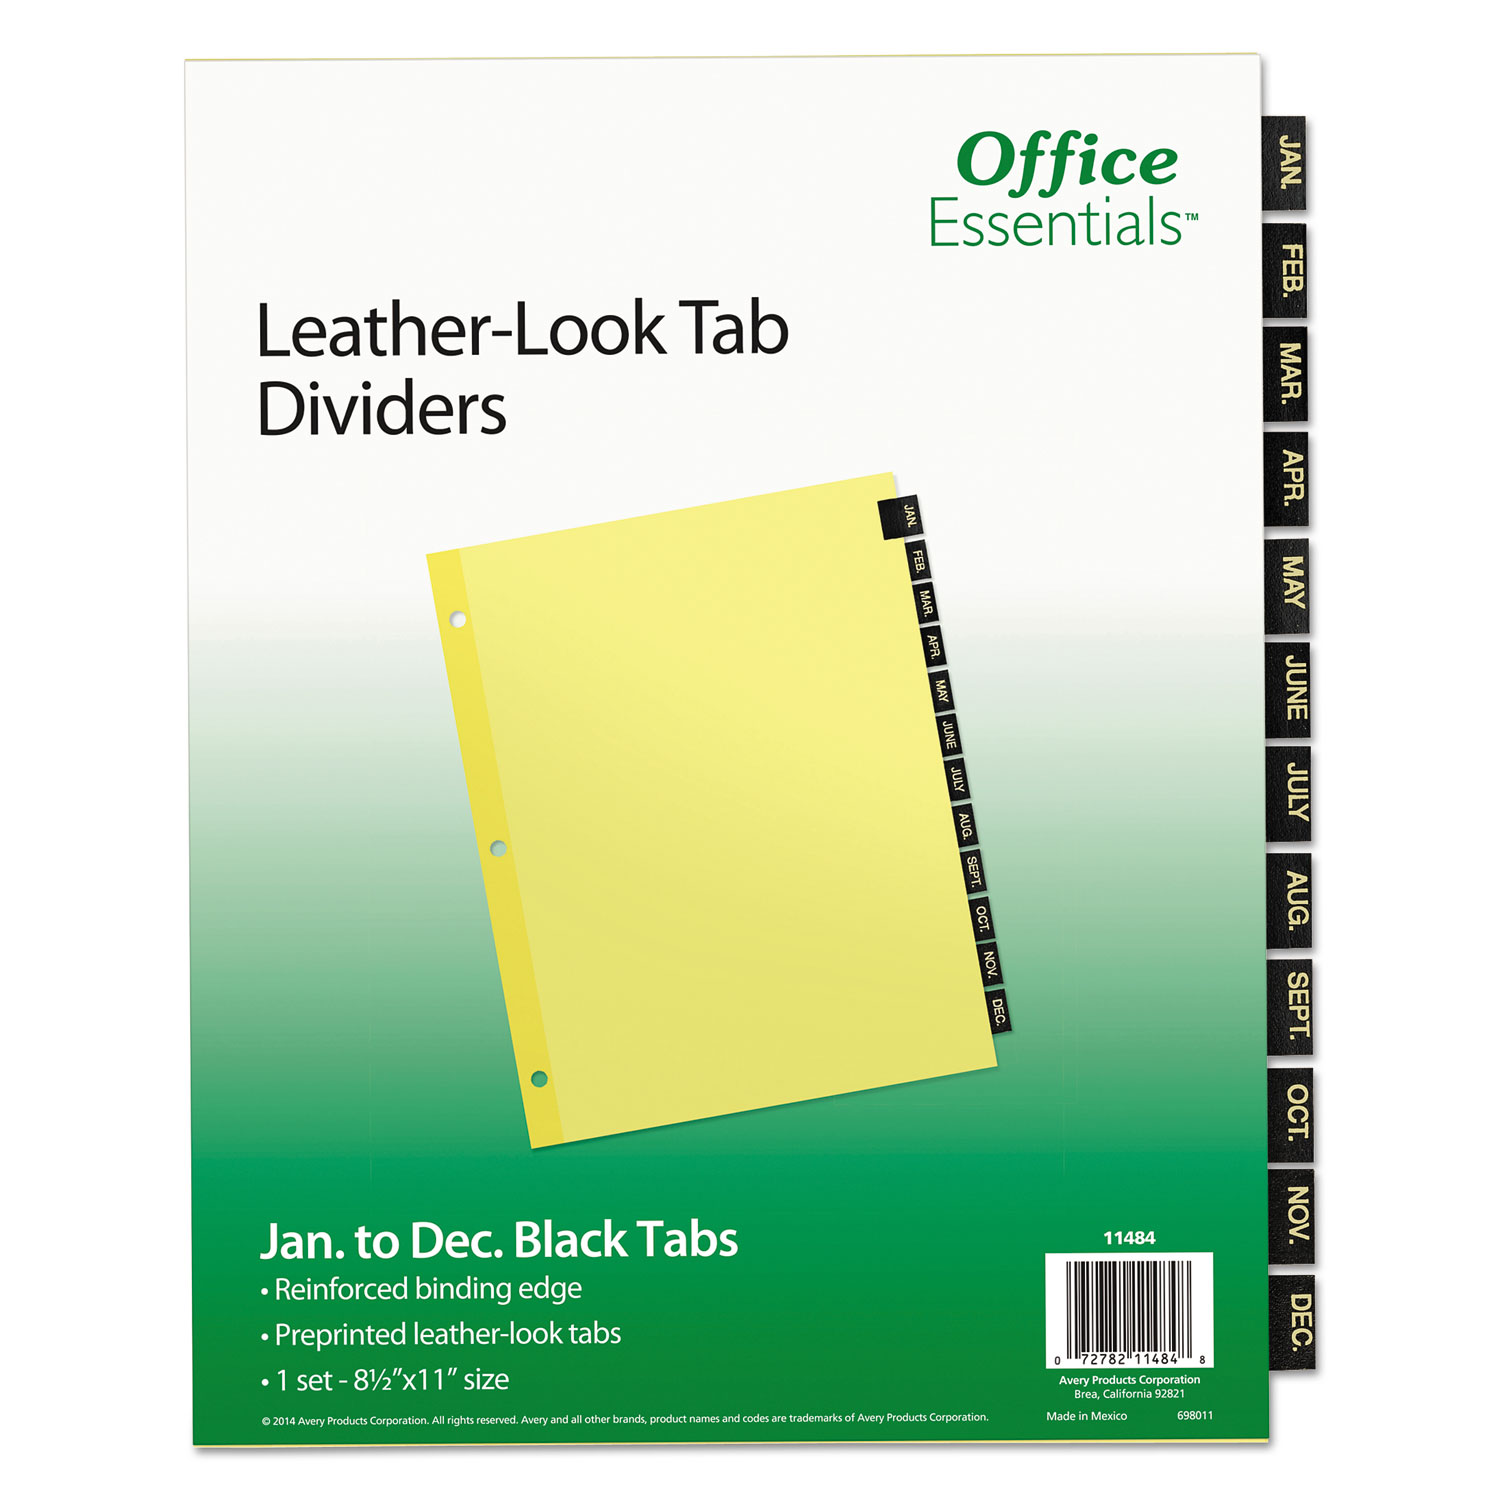 Office Essentials Black Leather Tab Dividers AVERY 11484